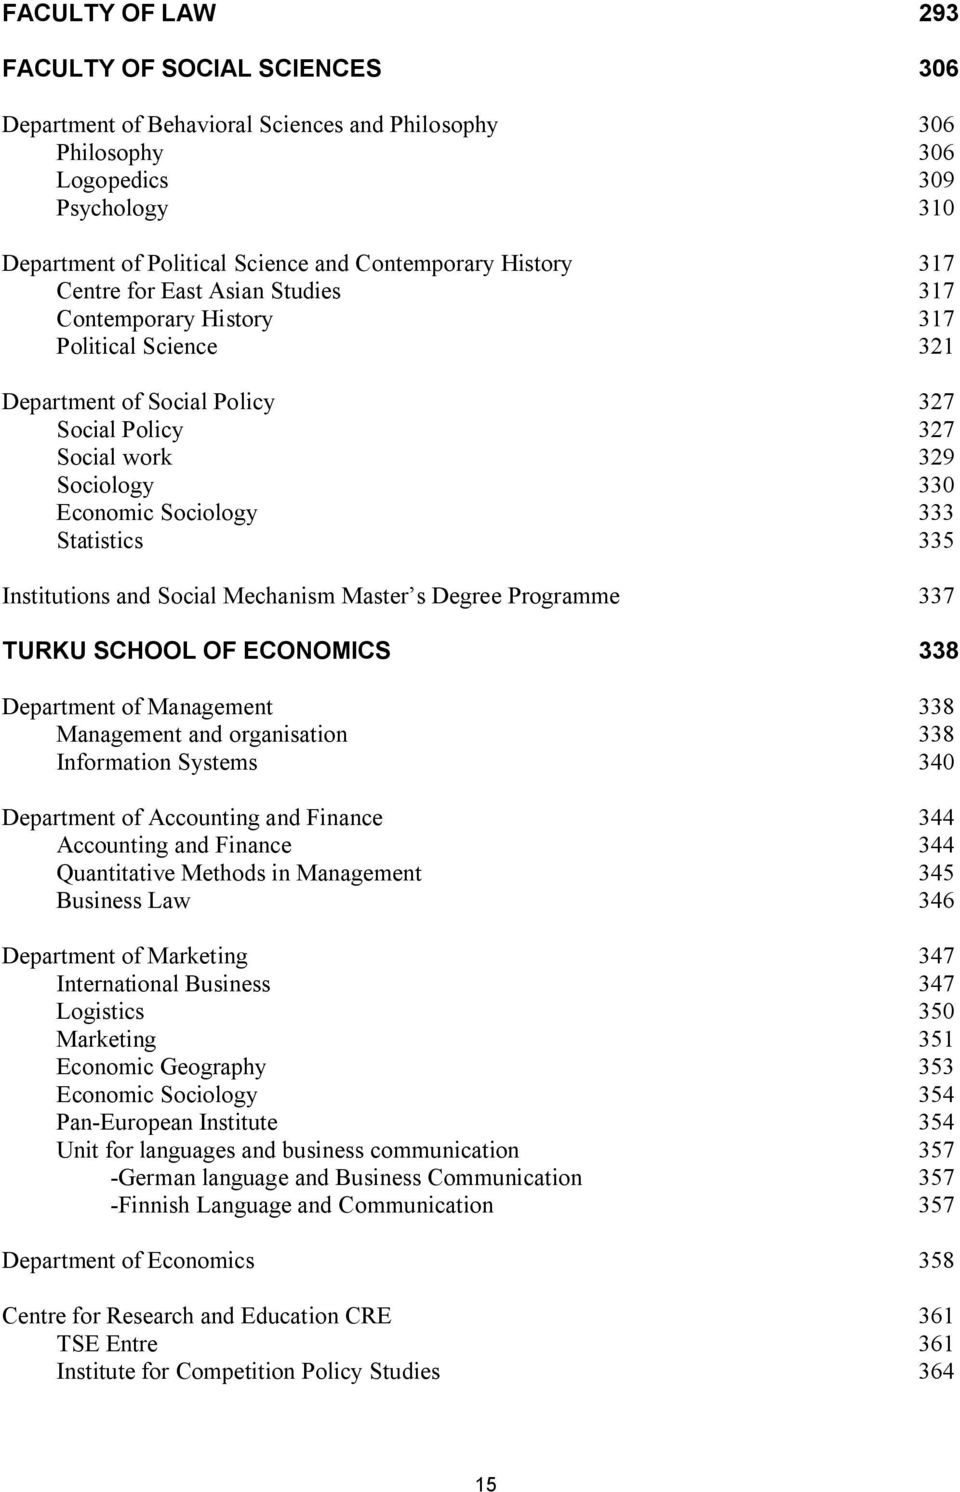 Statistics 335 Institutions and Social Mechanism Master s Degree Programme 337 TURKU SCHOOL OF ECONOMICS 338 Department of Management 338 Management and organisation 338 Information Systems 340